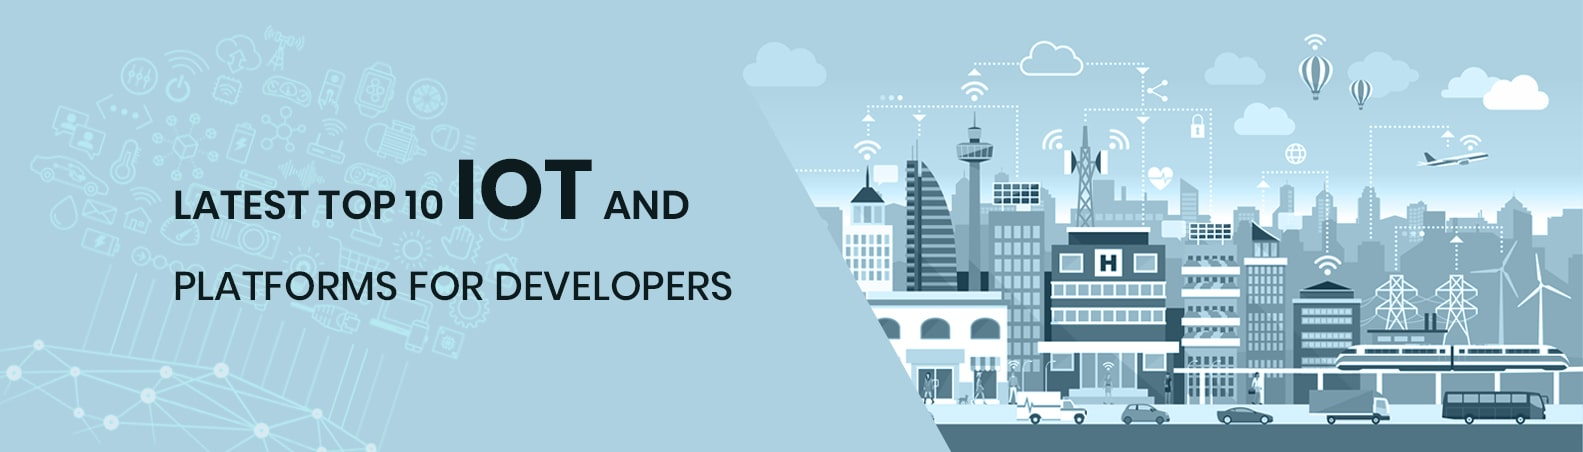 Latest Top 10 IoT and Platforms for Developers